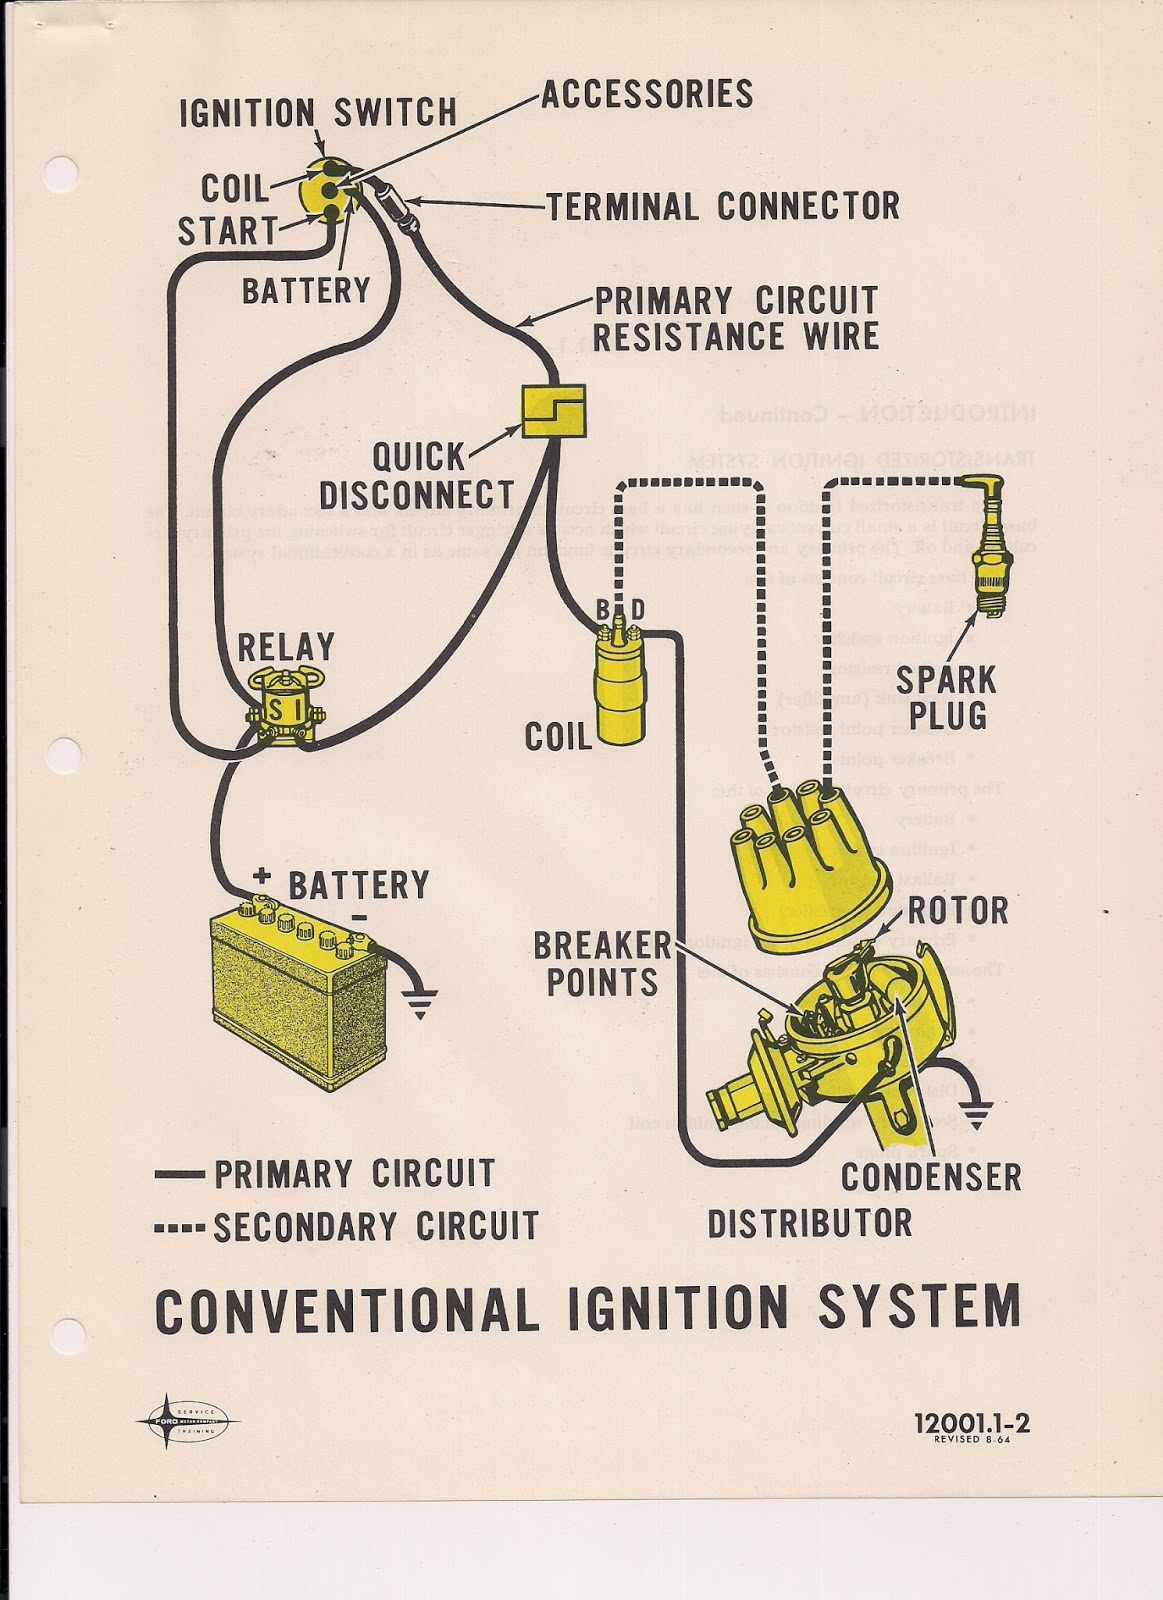 Ignition Coil Wiring Diagram : ignition, wiring, diagram, Feeding, Ponies:, Mustang, Ignition, System